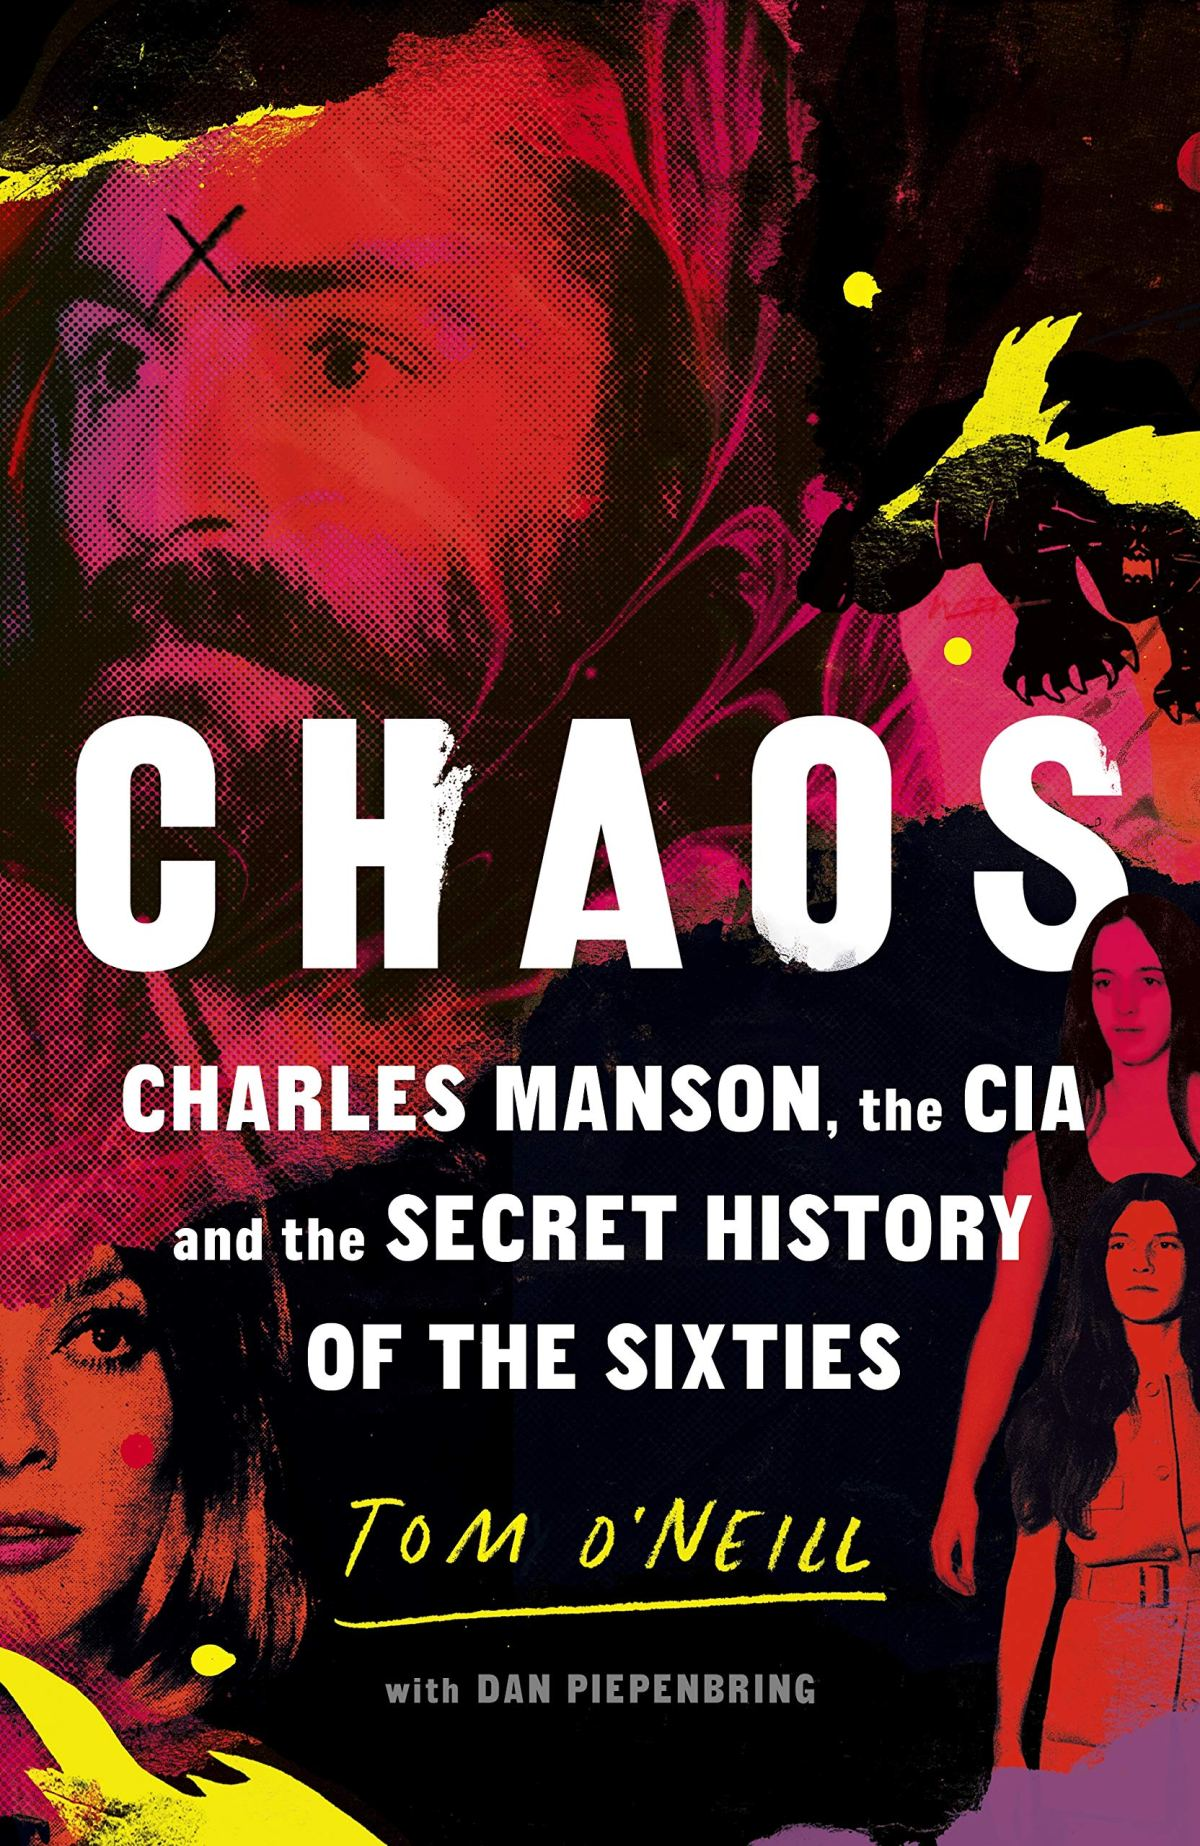 Chaos: Charles Manson, the CIA, and the Secret History of the Sixties…Tom O'Neill